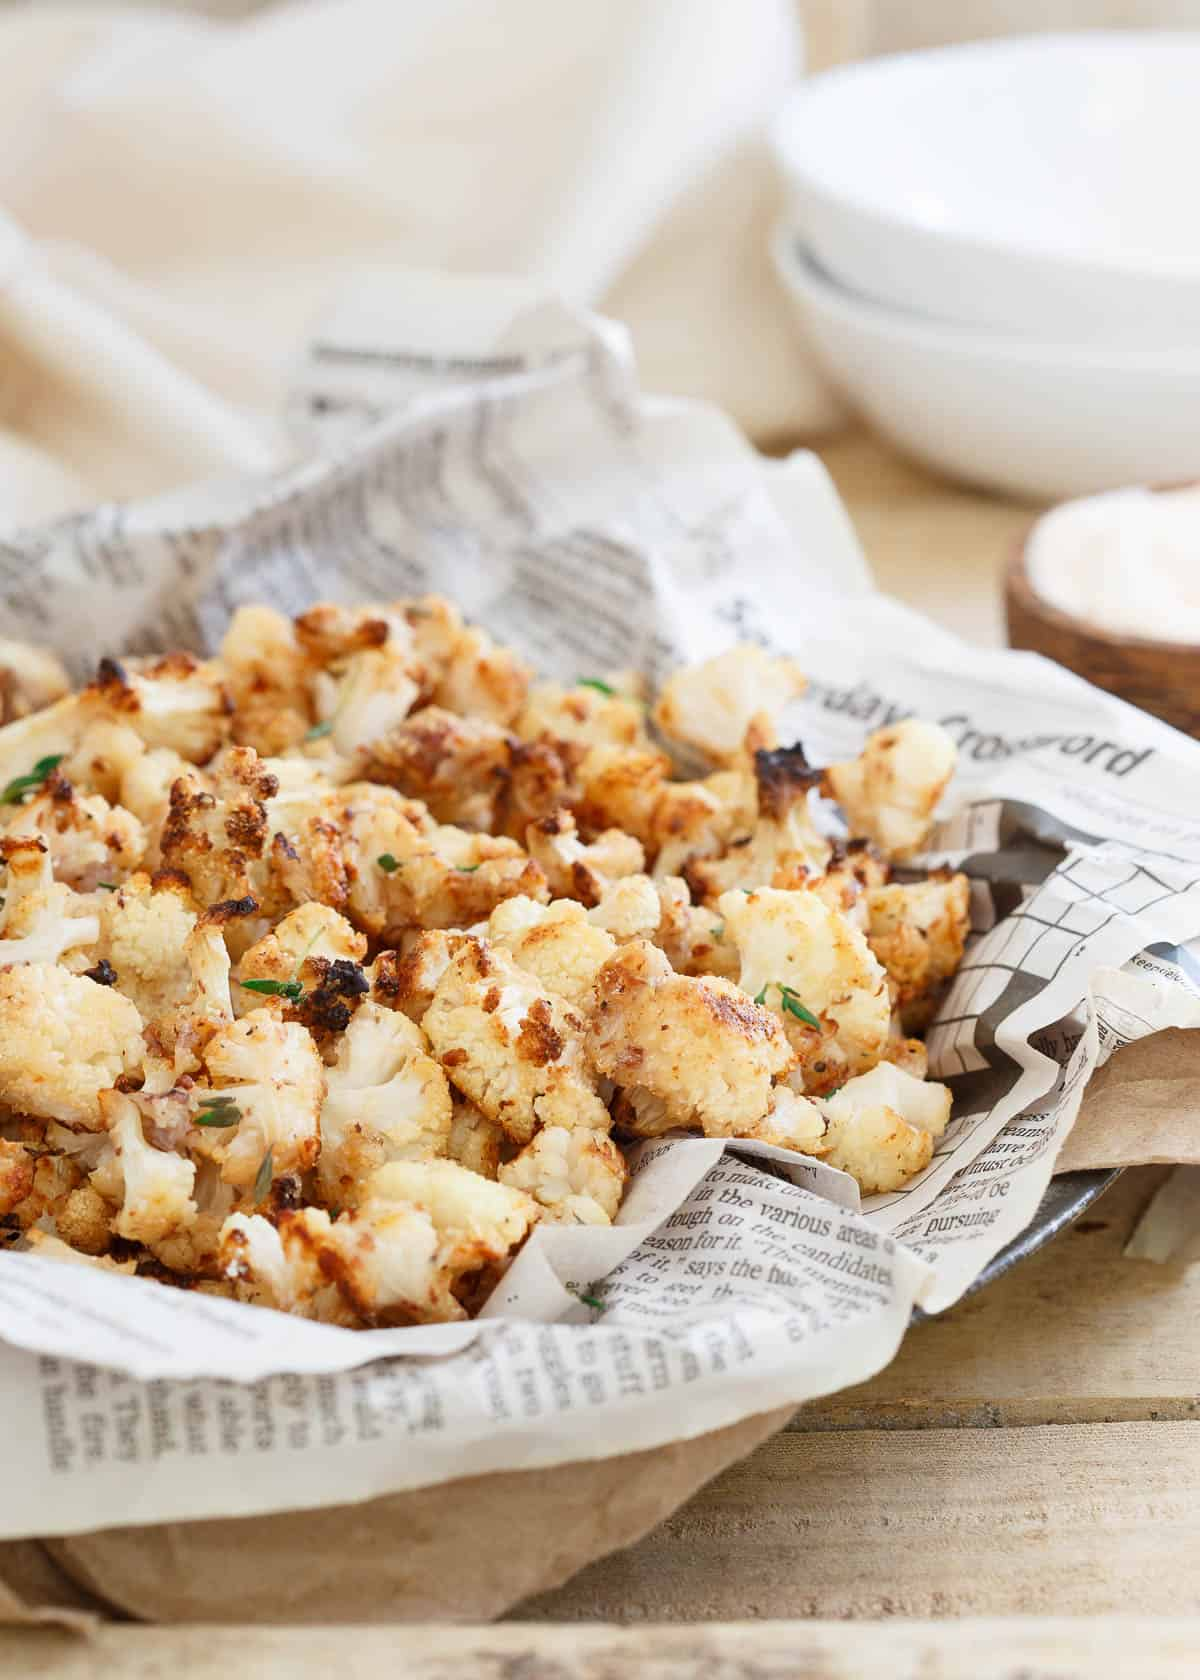 Salt and Vinegar Popcorn Cauliflower is just as addictive and delicious as the famous popcorn shrimp but with a healthier spin!